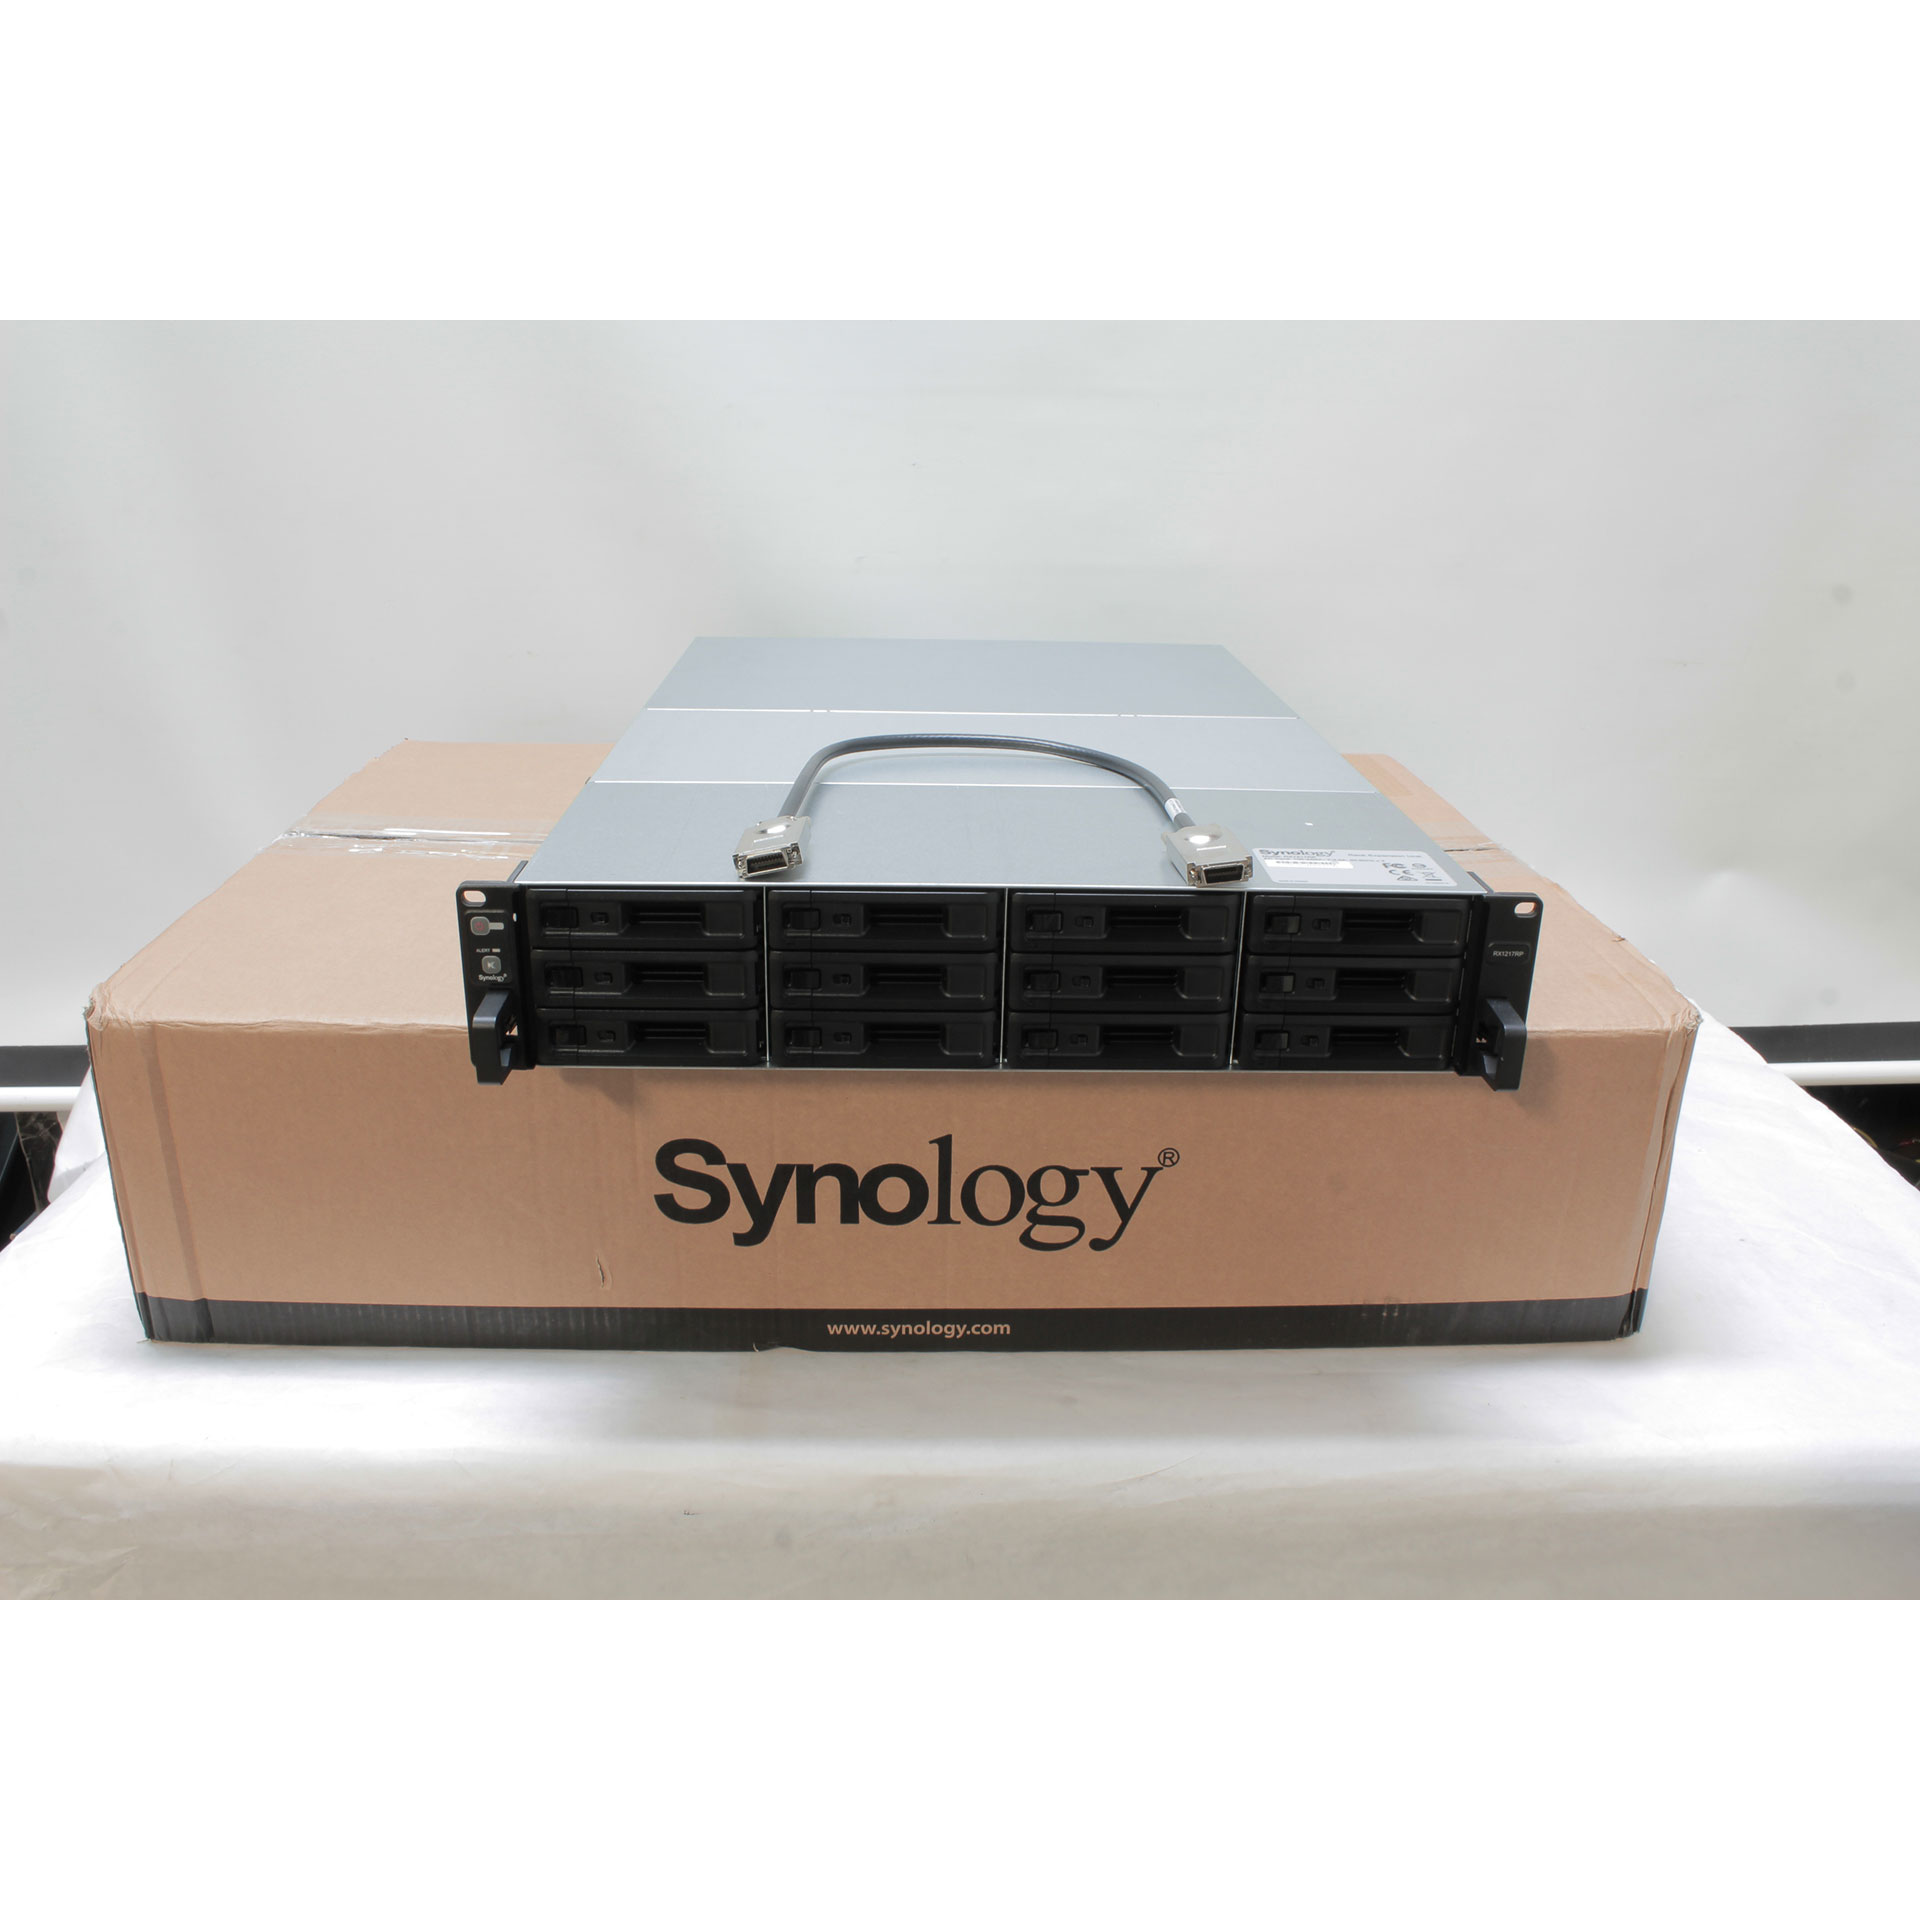 Synology RX1217RP Storage Enclosure 12 bays RX1217RP